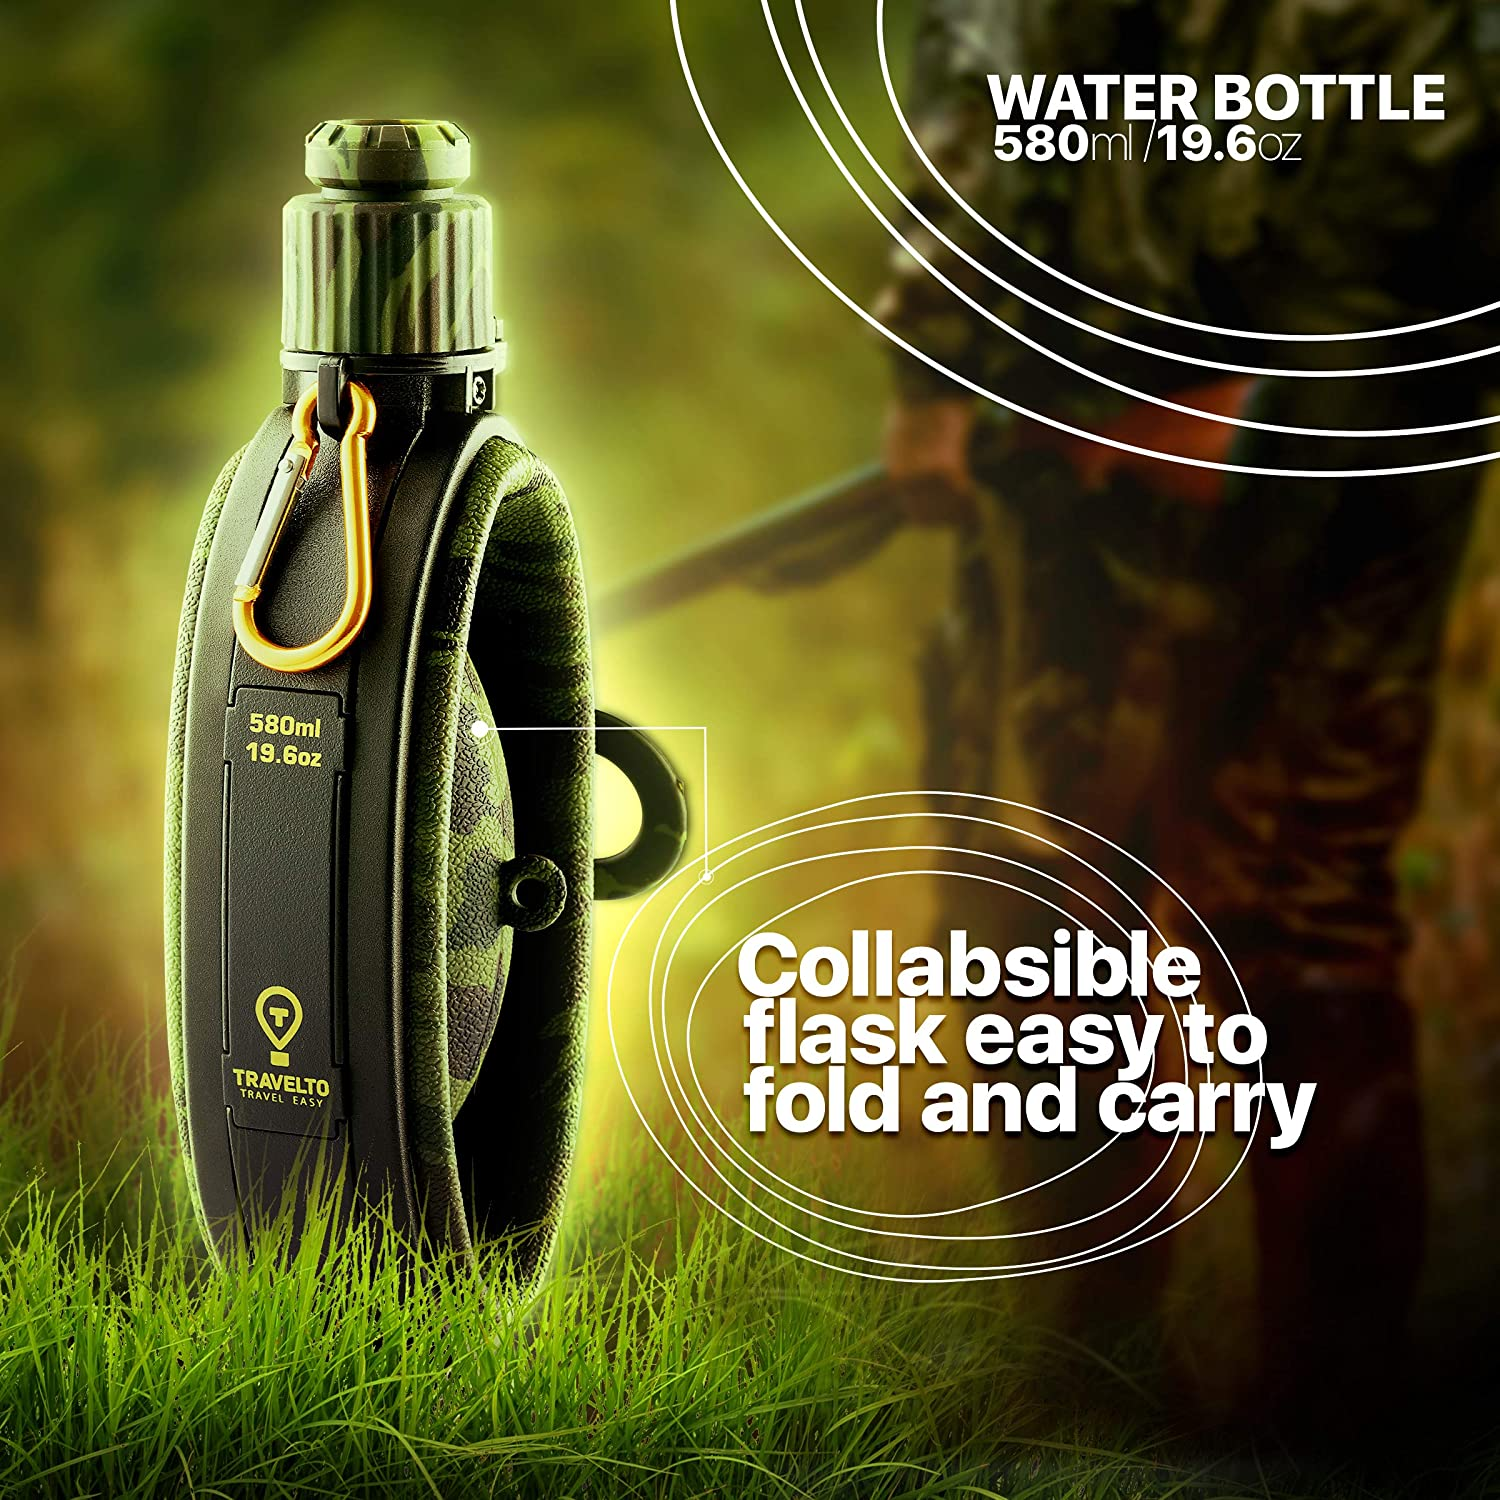 with Compass for Outdoor Travelling BPA Free Foodgrade Silicone Hiking Camping TRAVELTO Collapsible Water Bottle Premium Quality Military Portable Canteen 19.8oz 580 ml